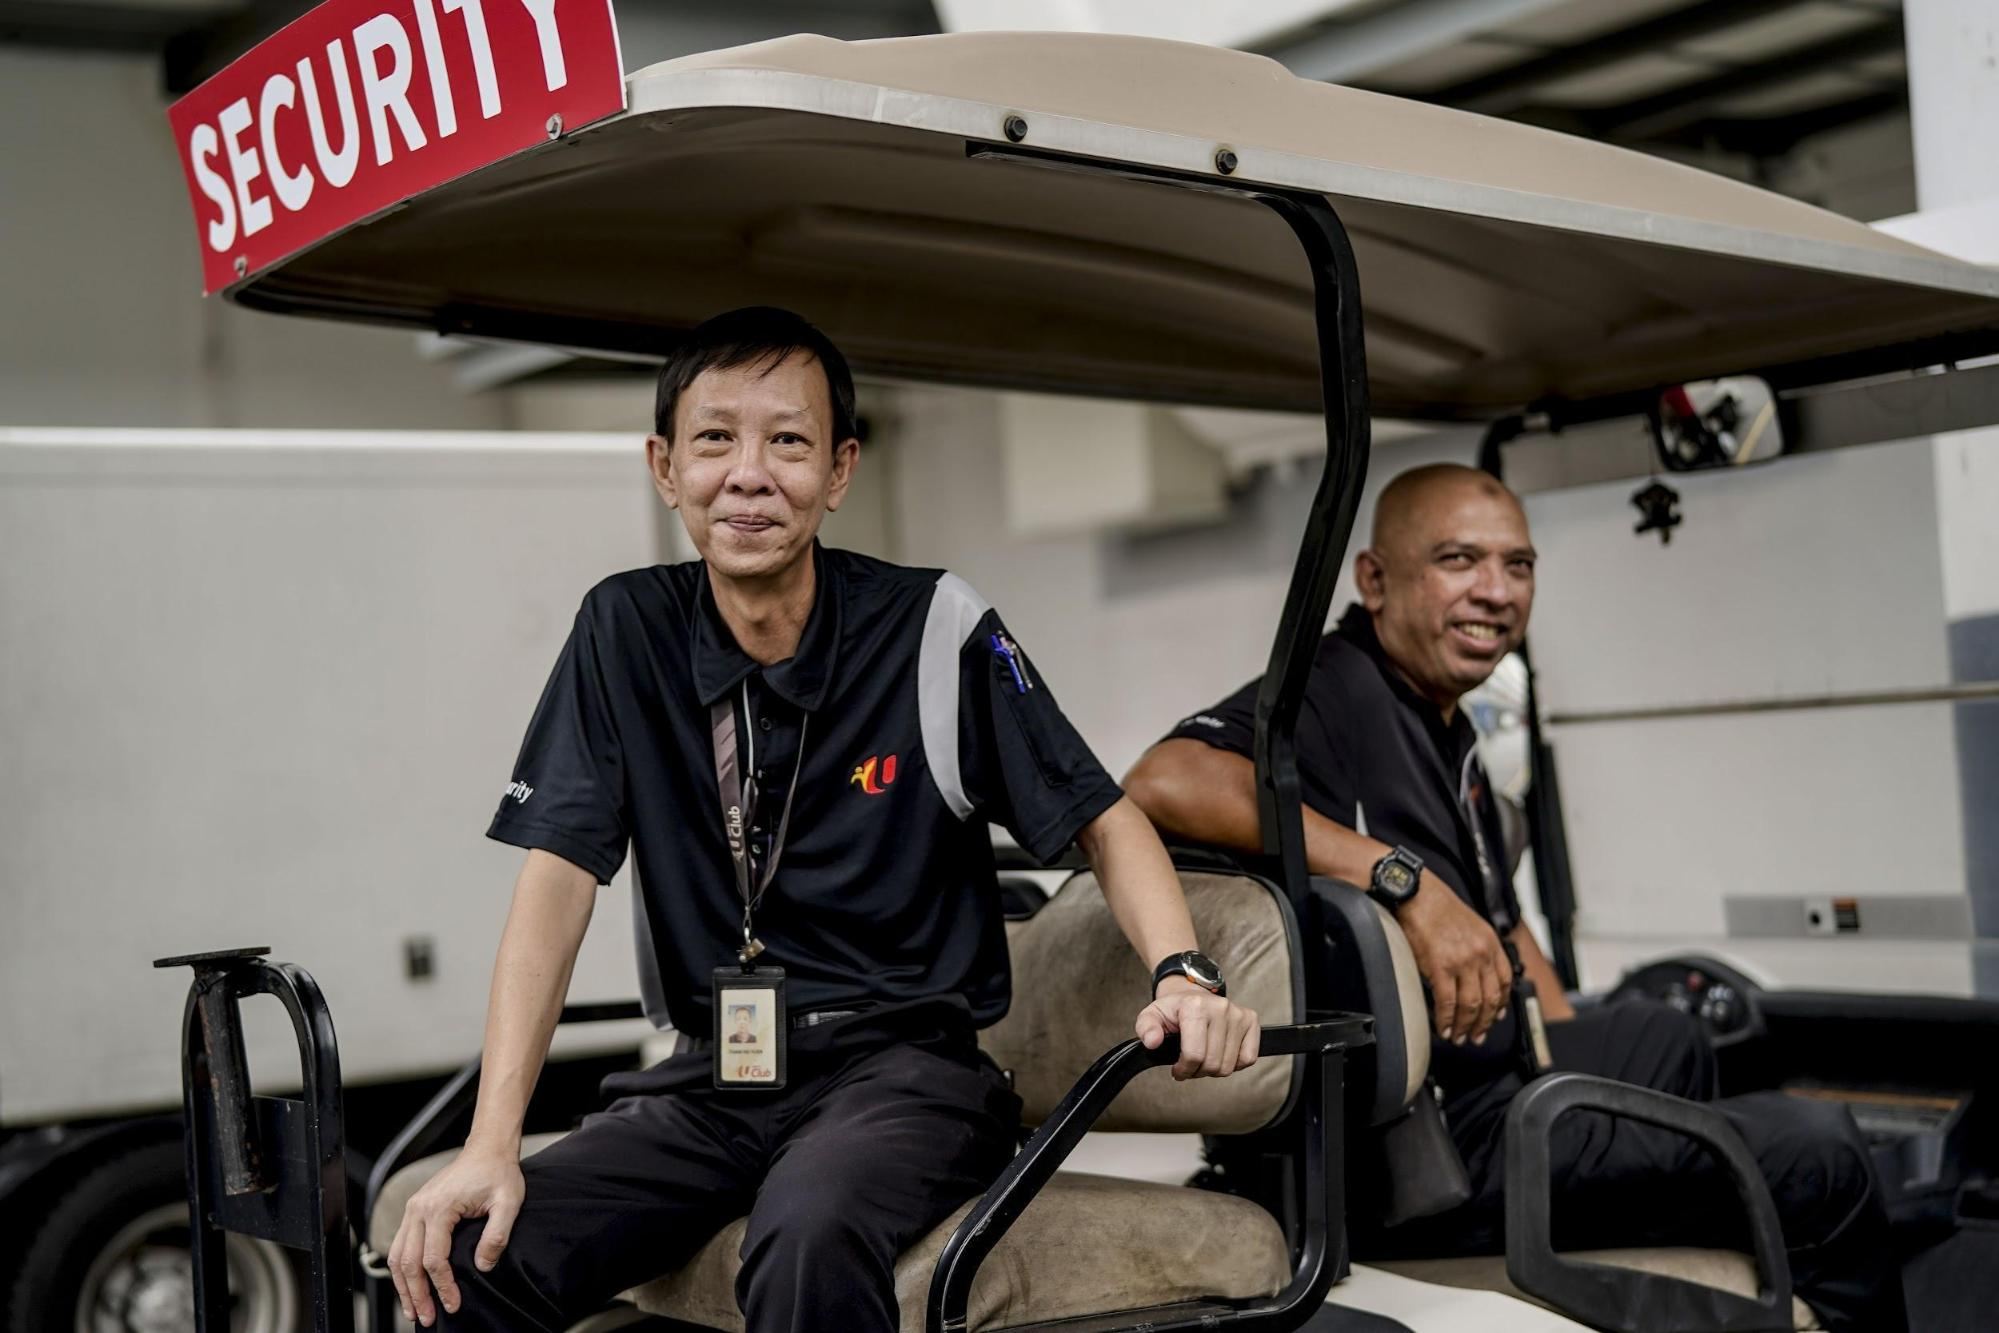 From Boss To Friend: How Two Men Found Friendship At The Workplace